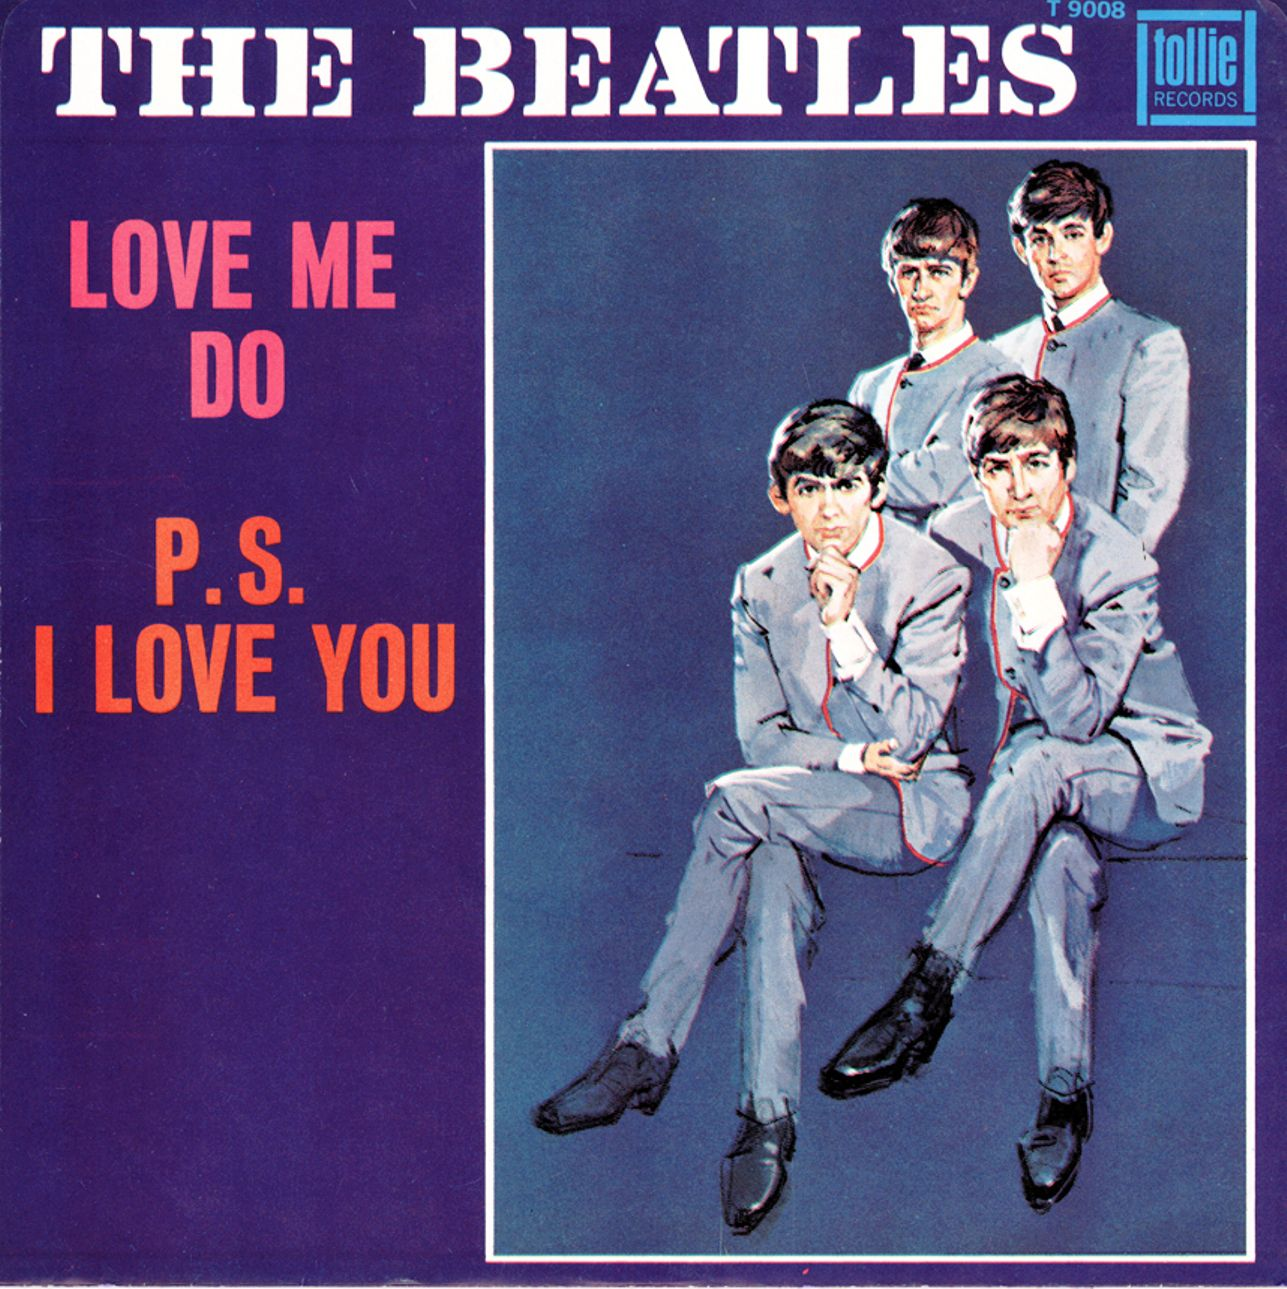 The Beatles Songs: 'Love Me Do